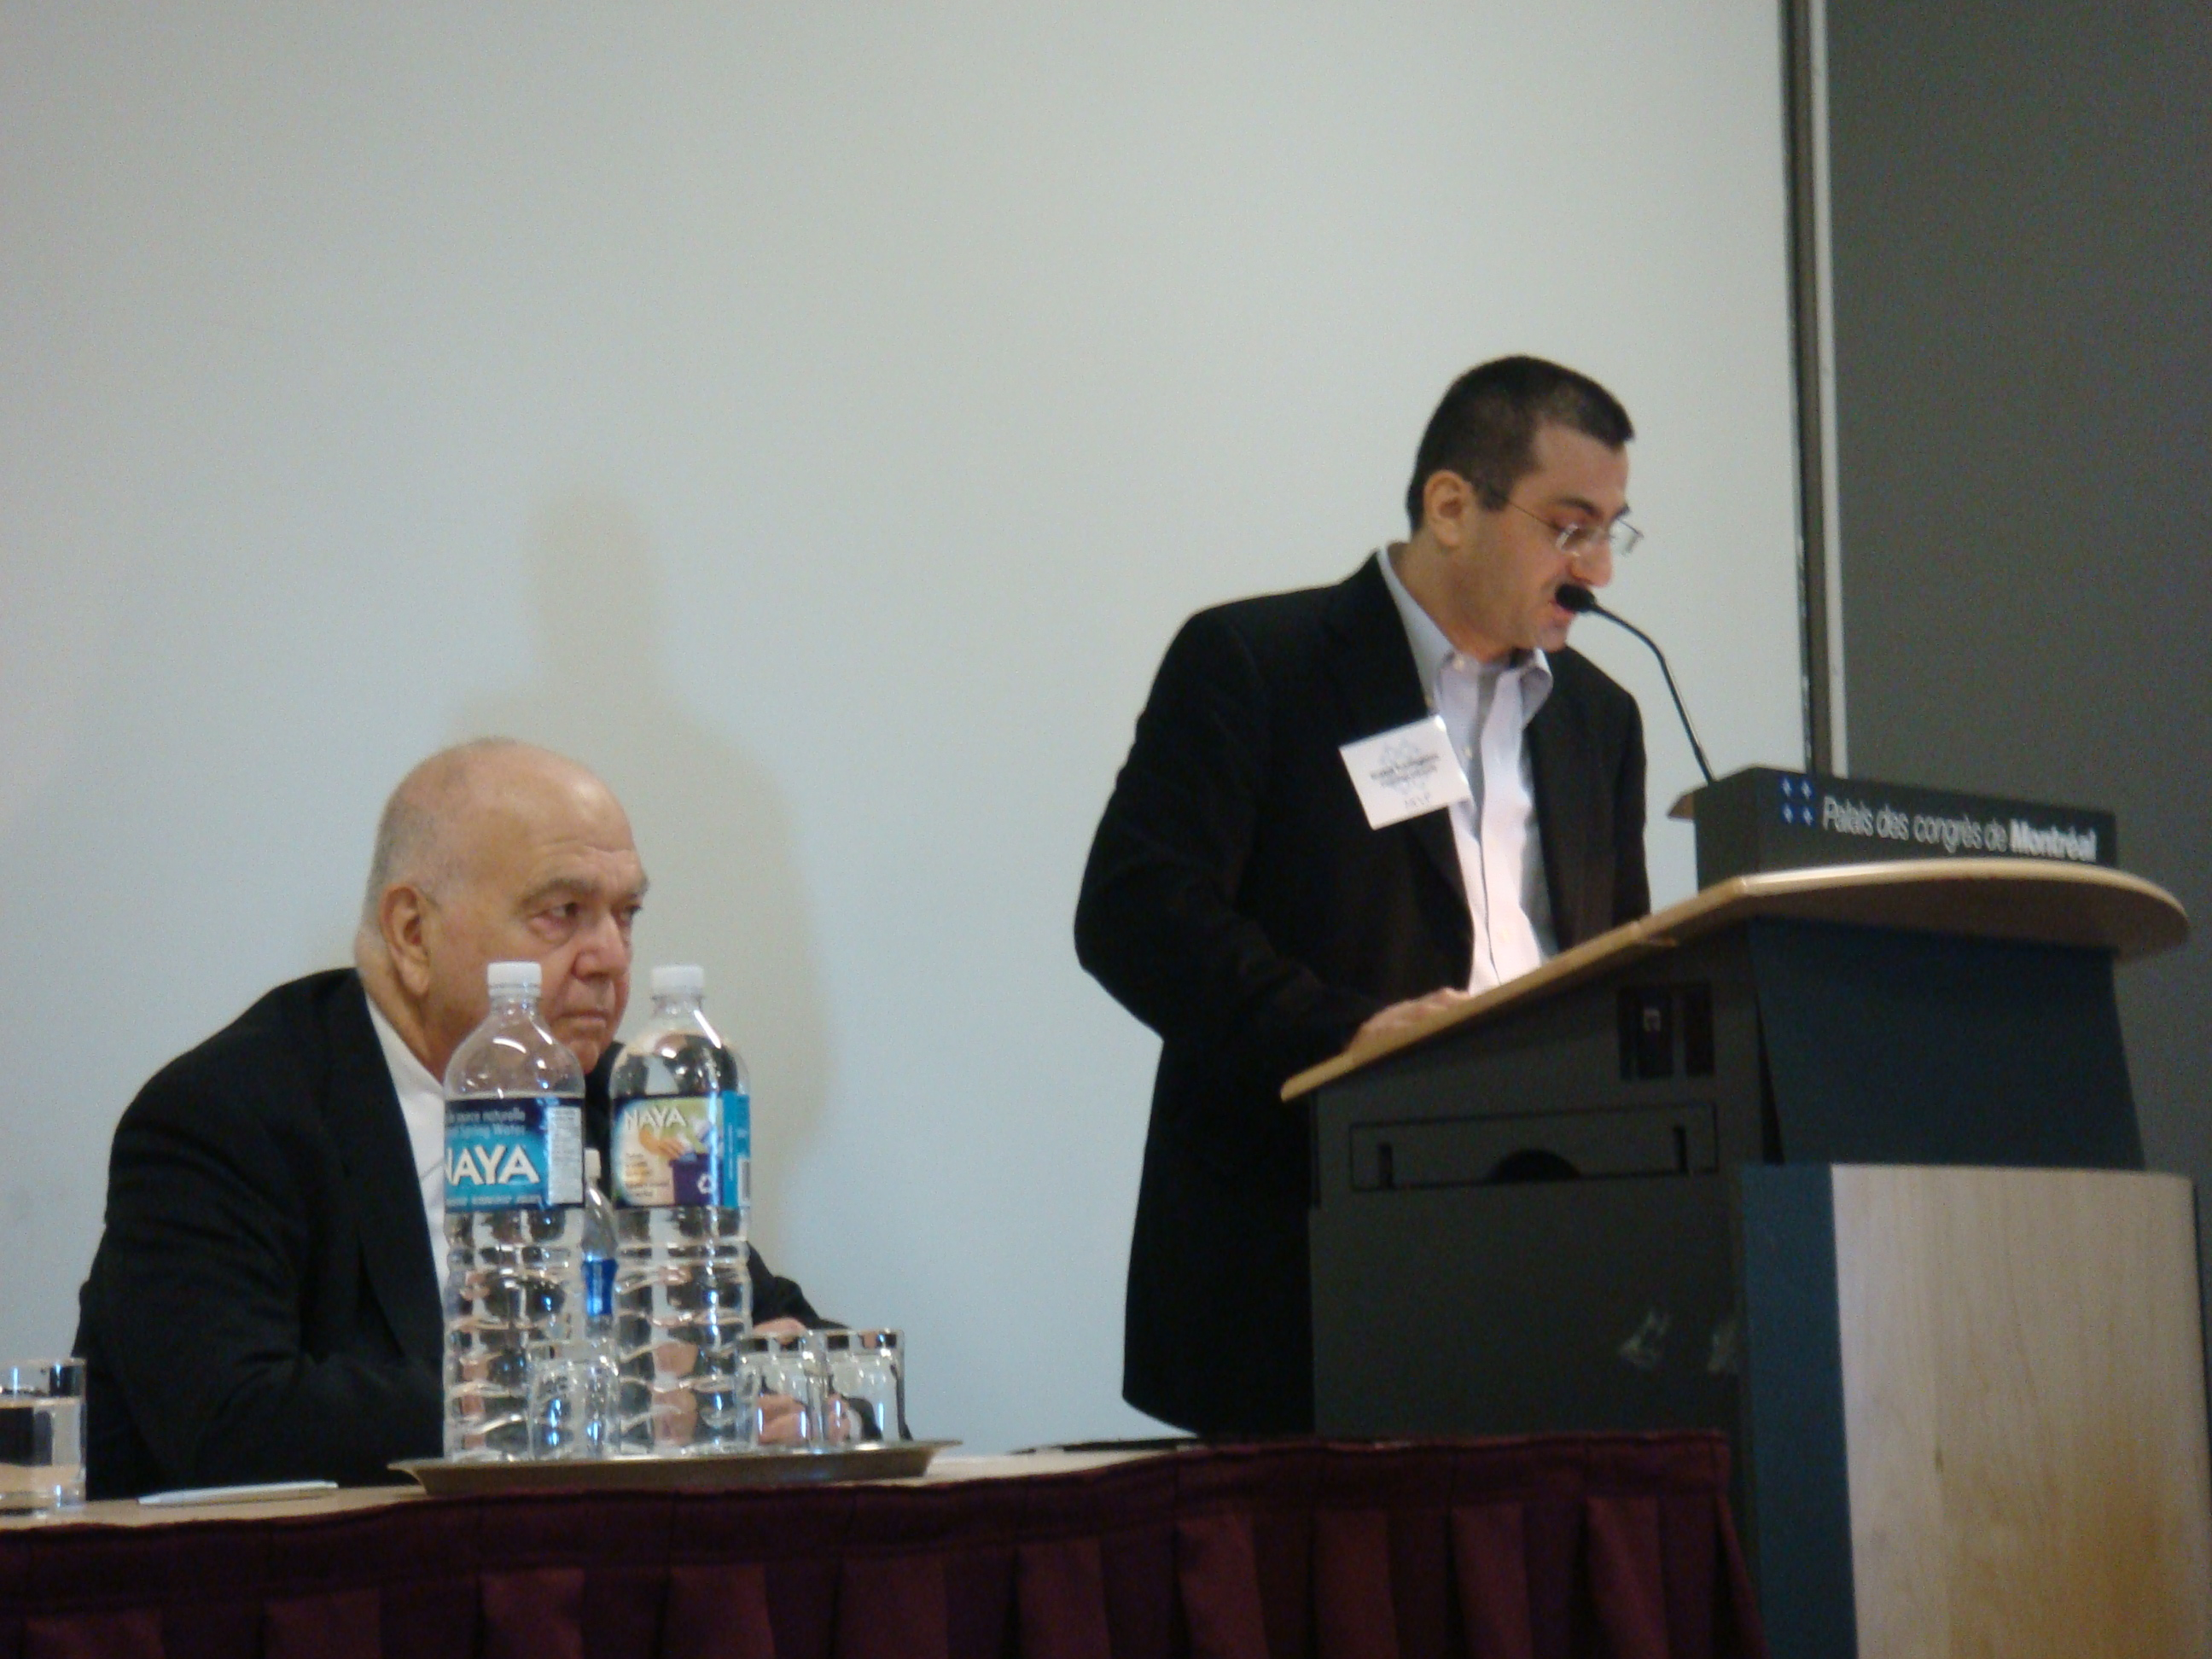 MESA Conference, 2007, Richard Hovhanissian (L), Hratch Tchilingirian at Hrant Dink Memorial Panel